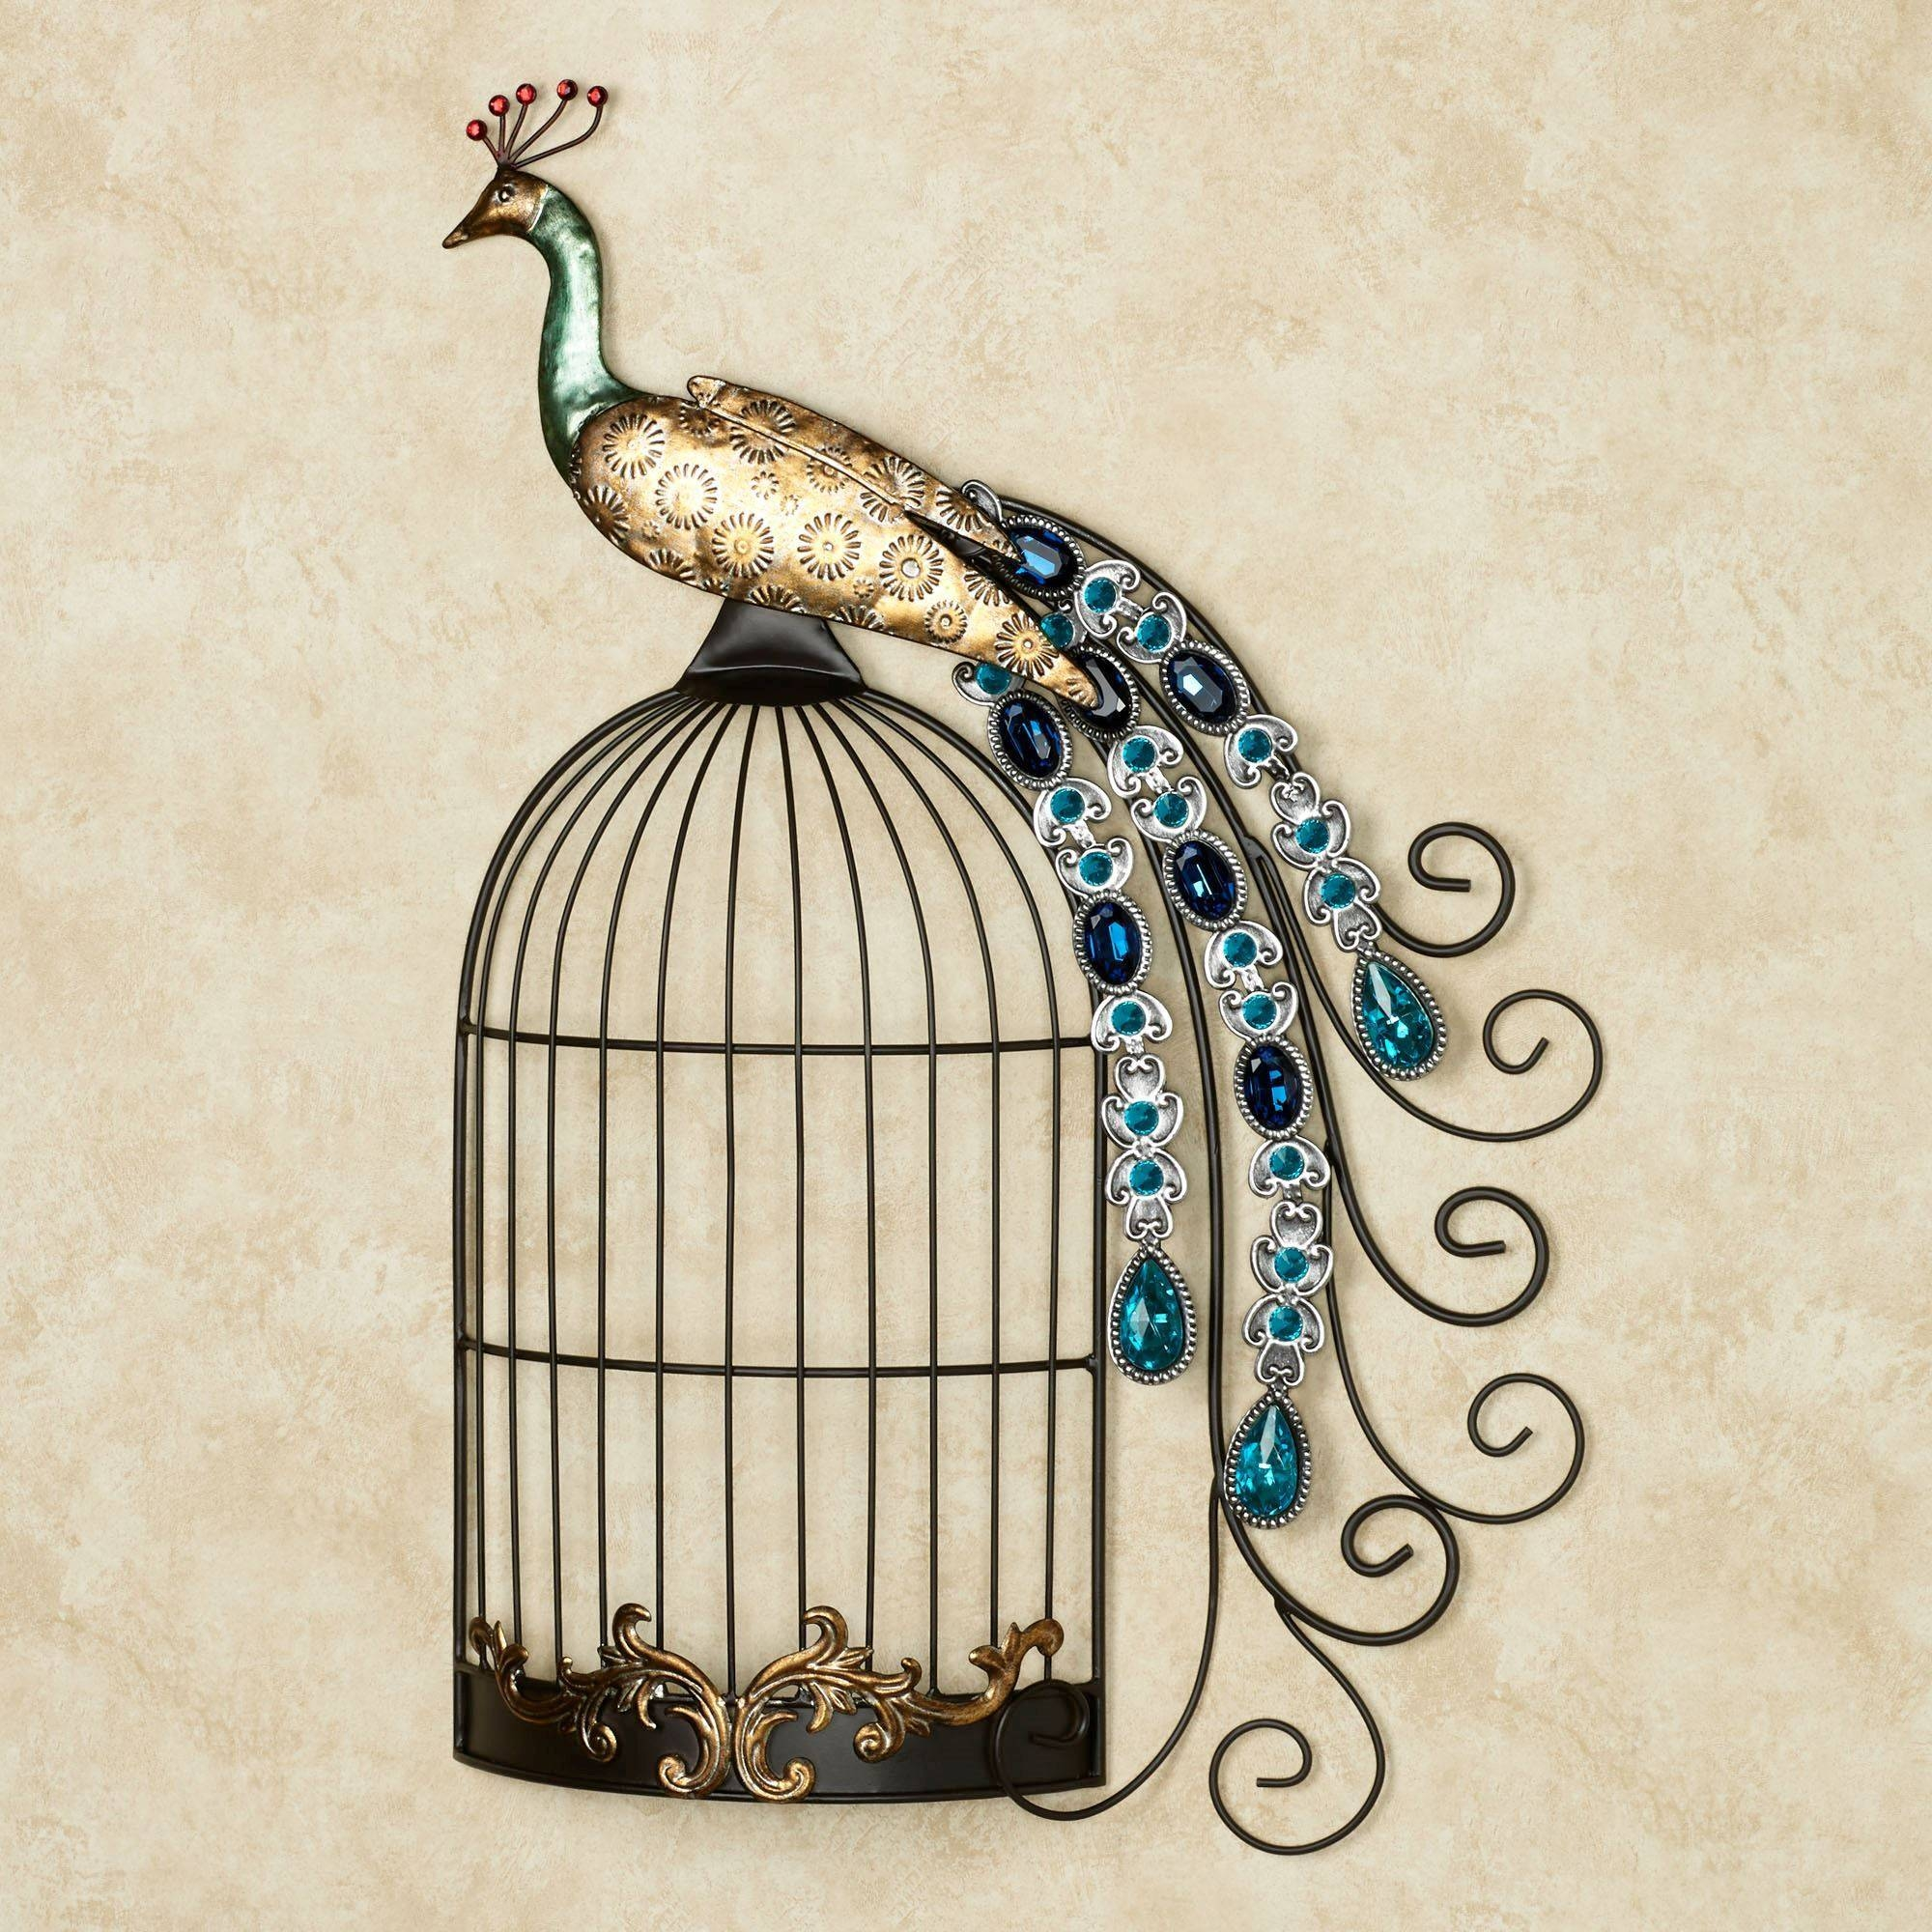 Peacock Jewels On Cage Metal Wall Art Throughout 2018 Metal Peacock Wall Art (View 9 of 20)